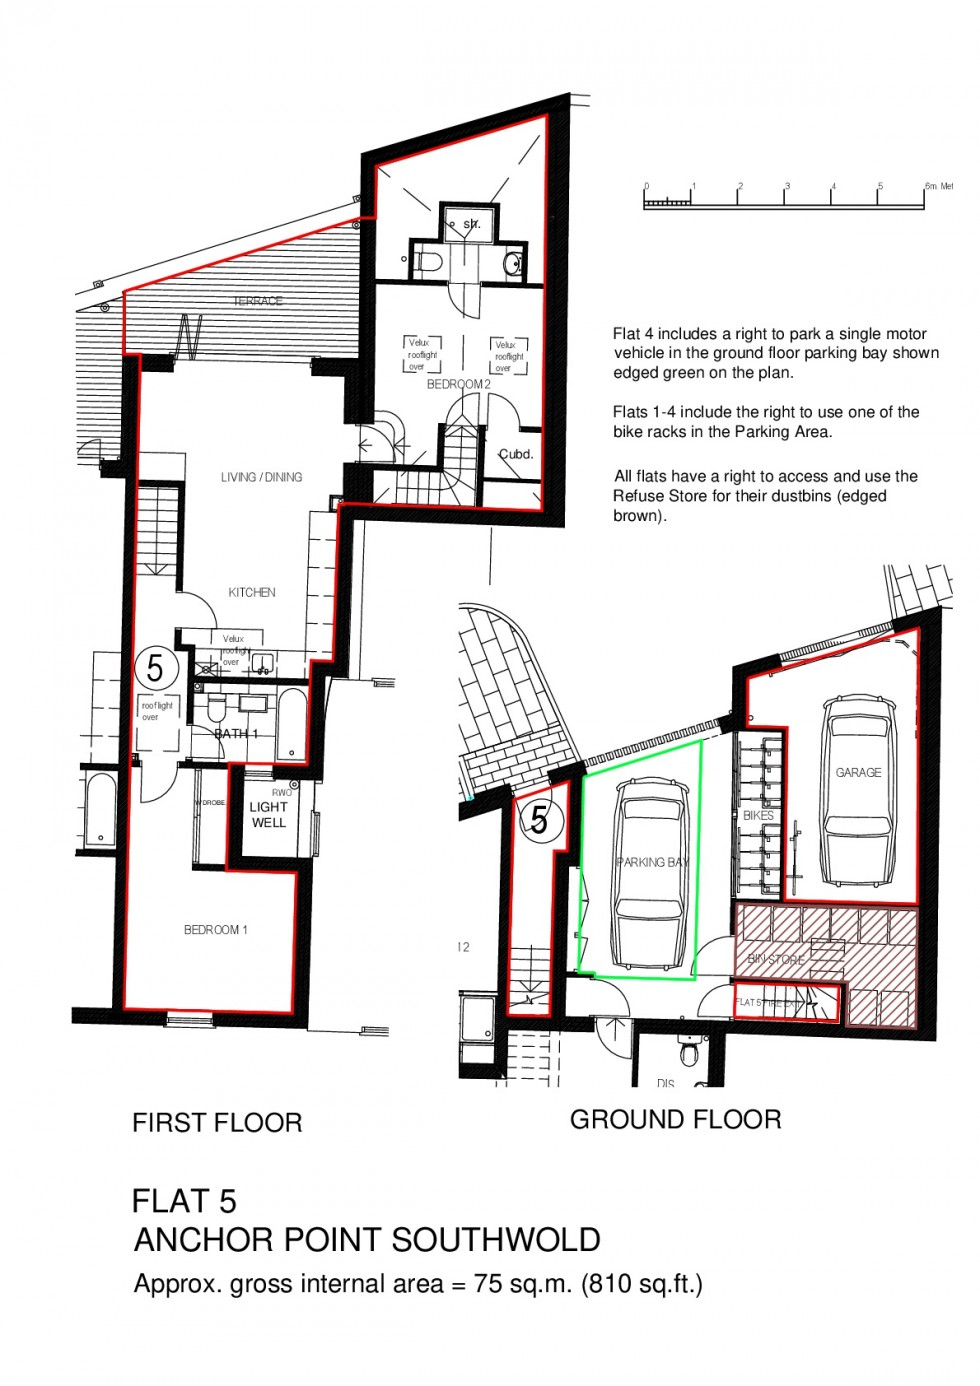 Floorplan for Flat No 5, Anchor Point, Southwold